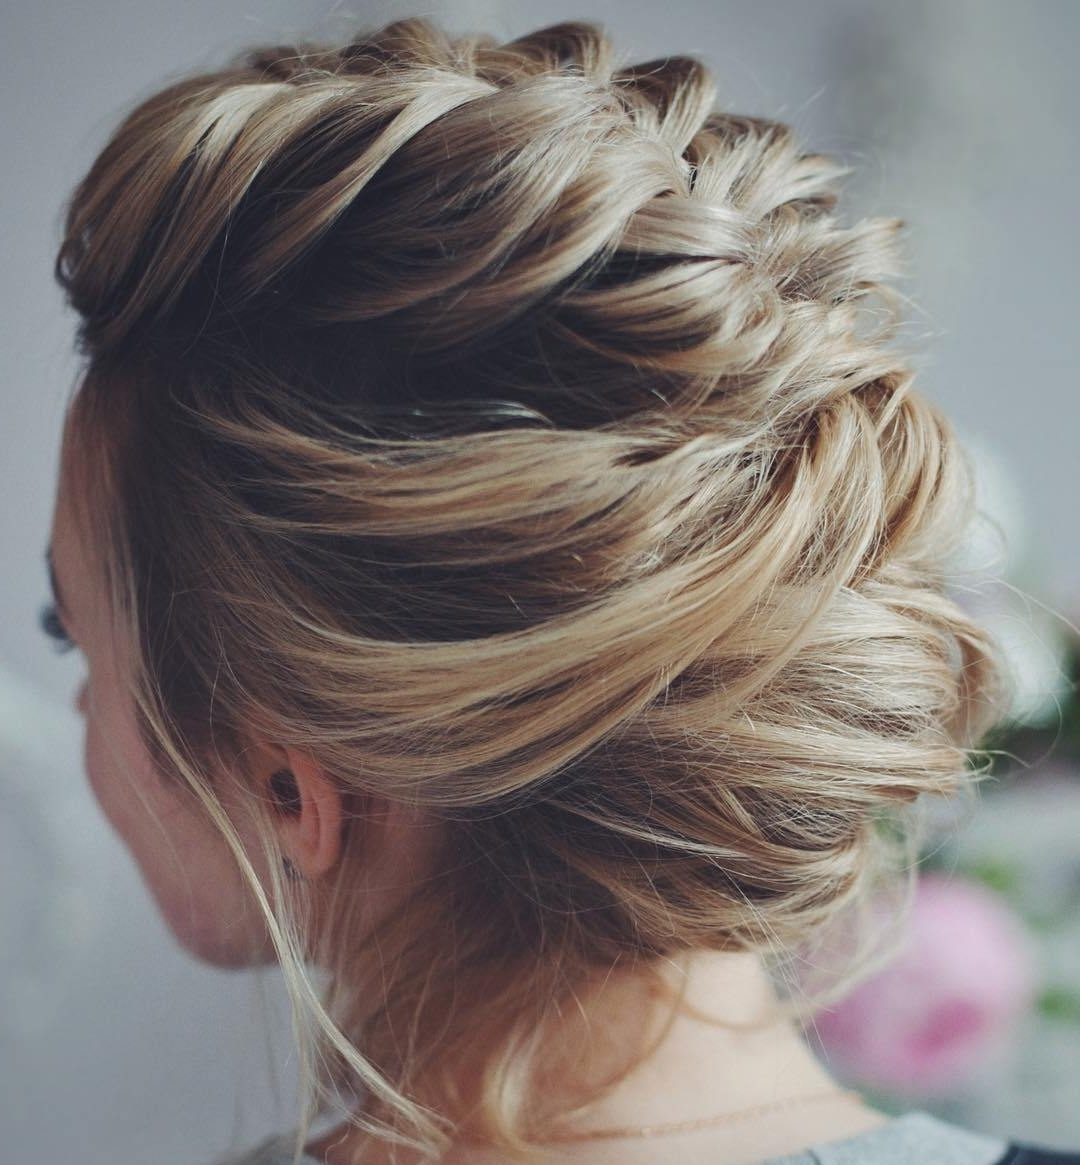 50 Hottest Prom Hairstyles For Short Hair Throughout Most Current Brunette Macrame Braid Hairstyles (View 2 of 20)